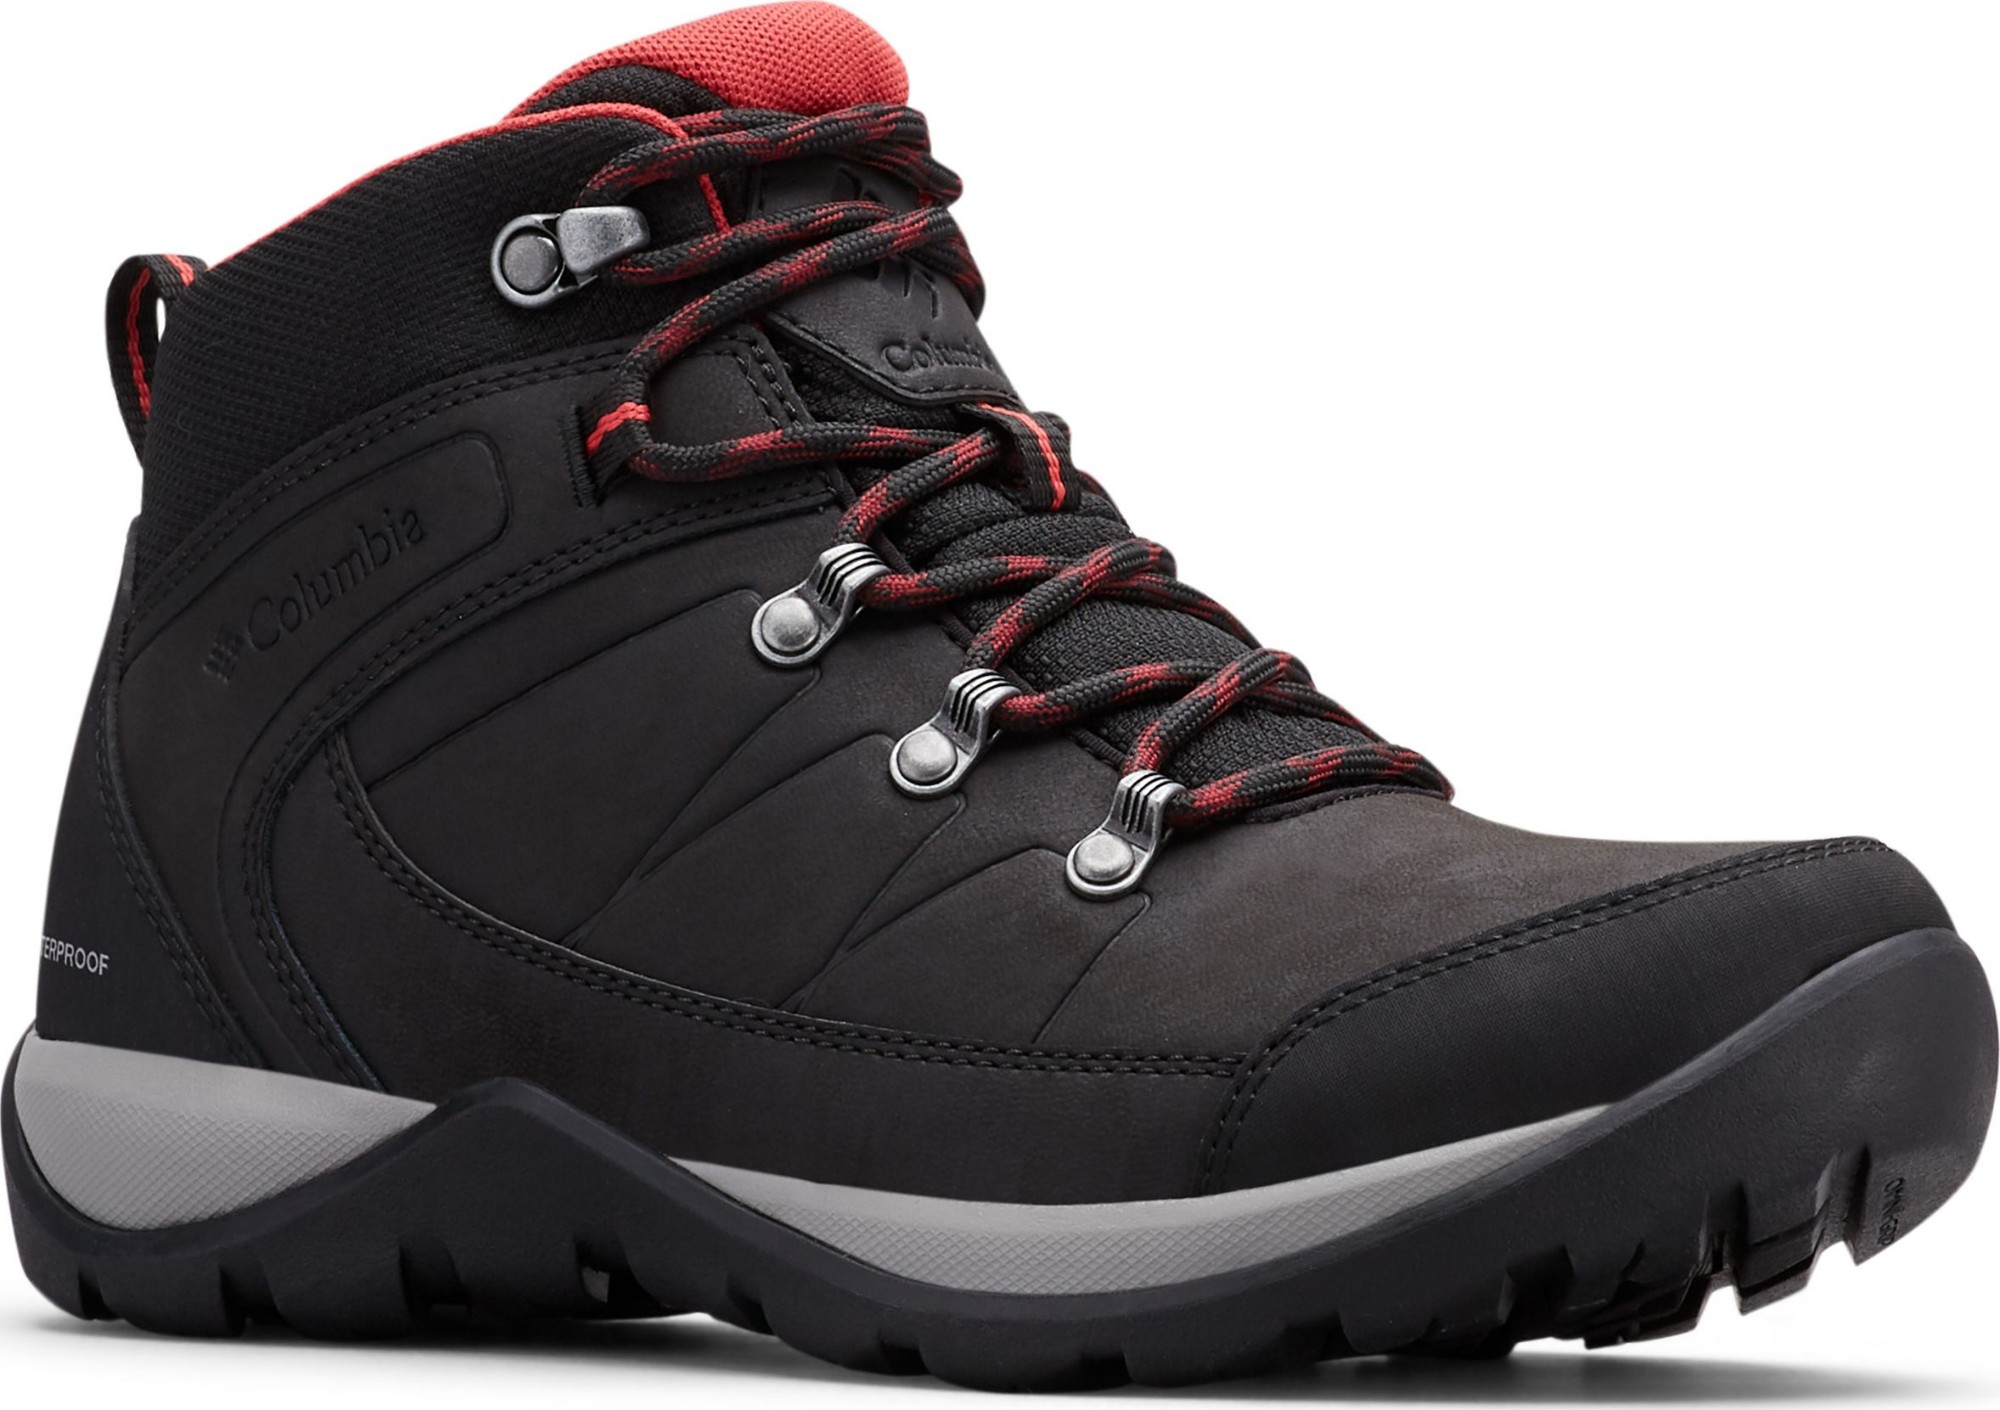 Columbia Fire Venture L Mid II Waterproof Black/Daredevil 41